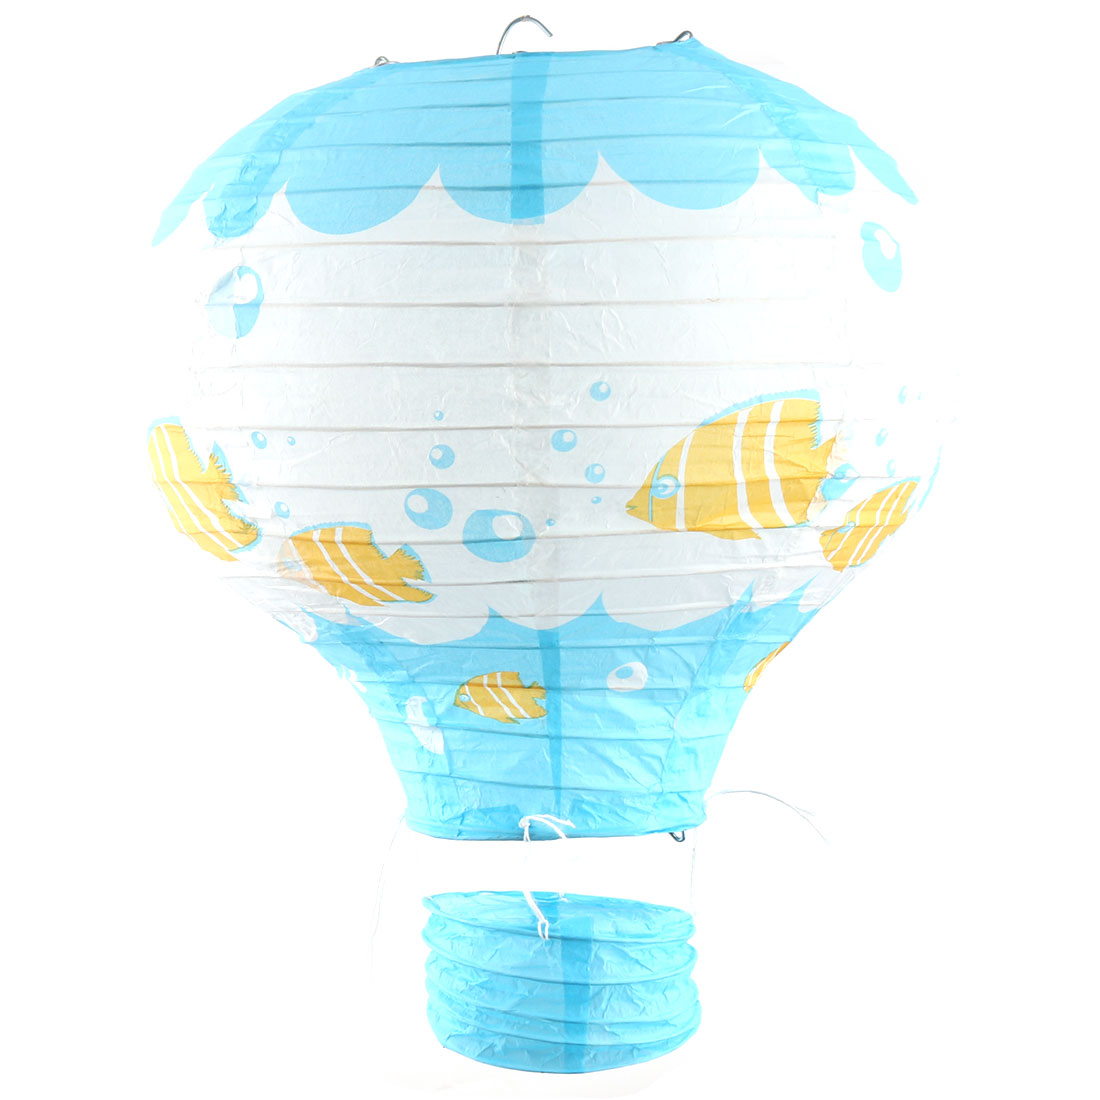 Engagement Feast Paper Fish Pattern DIY Lightless Hanging Decor Hot Air Balloon Lantern Blue 10 Inches Dia